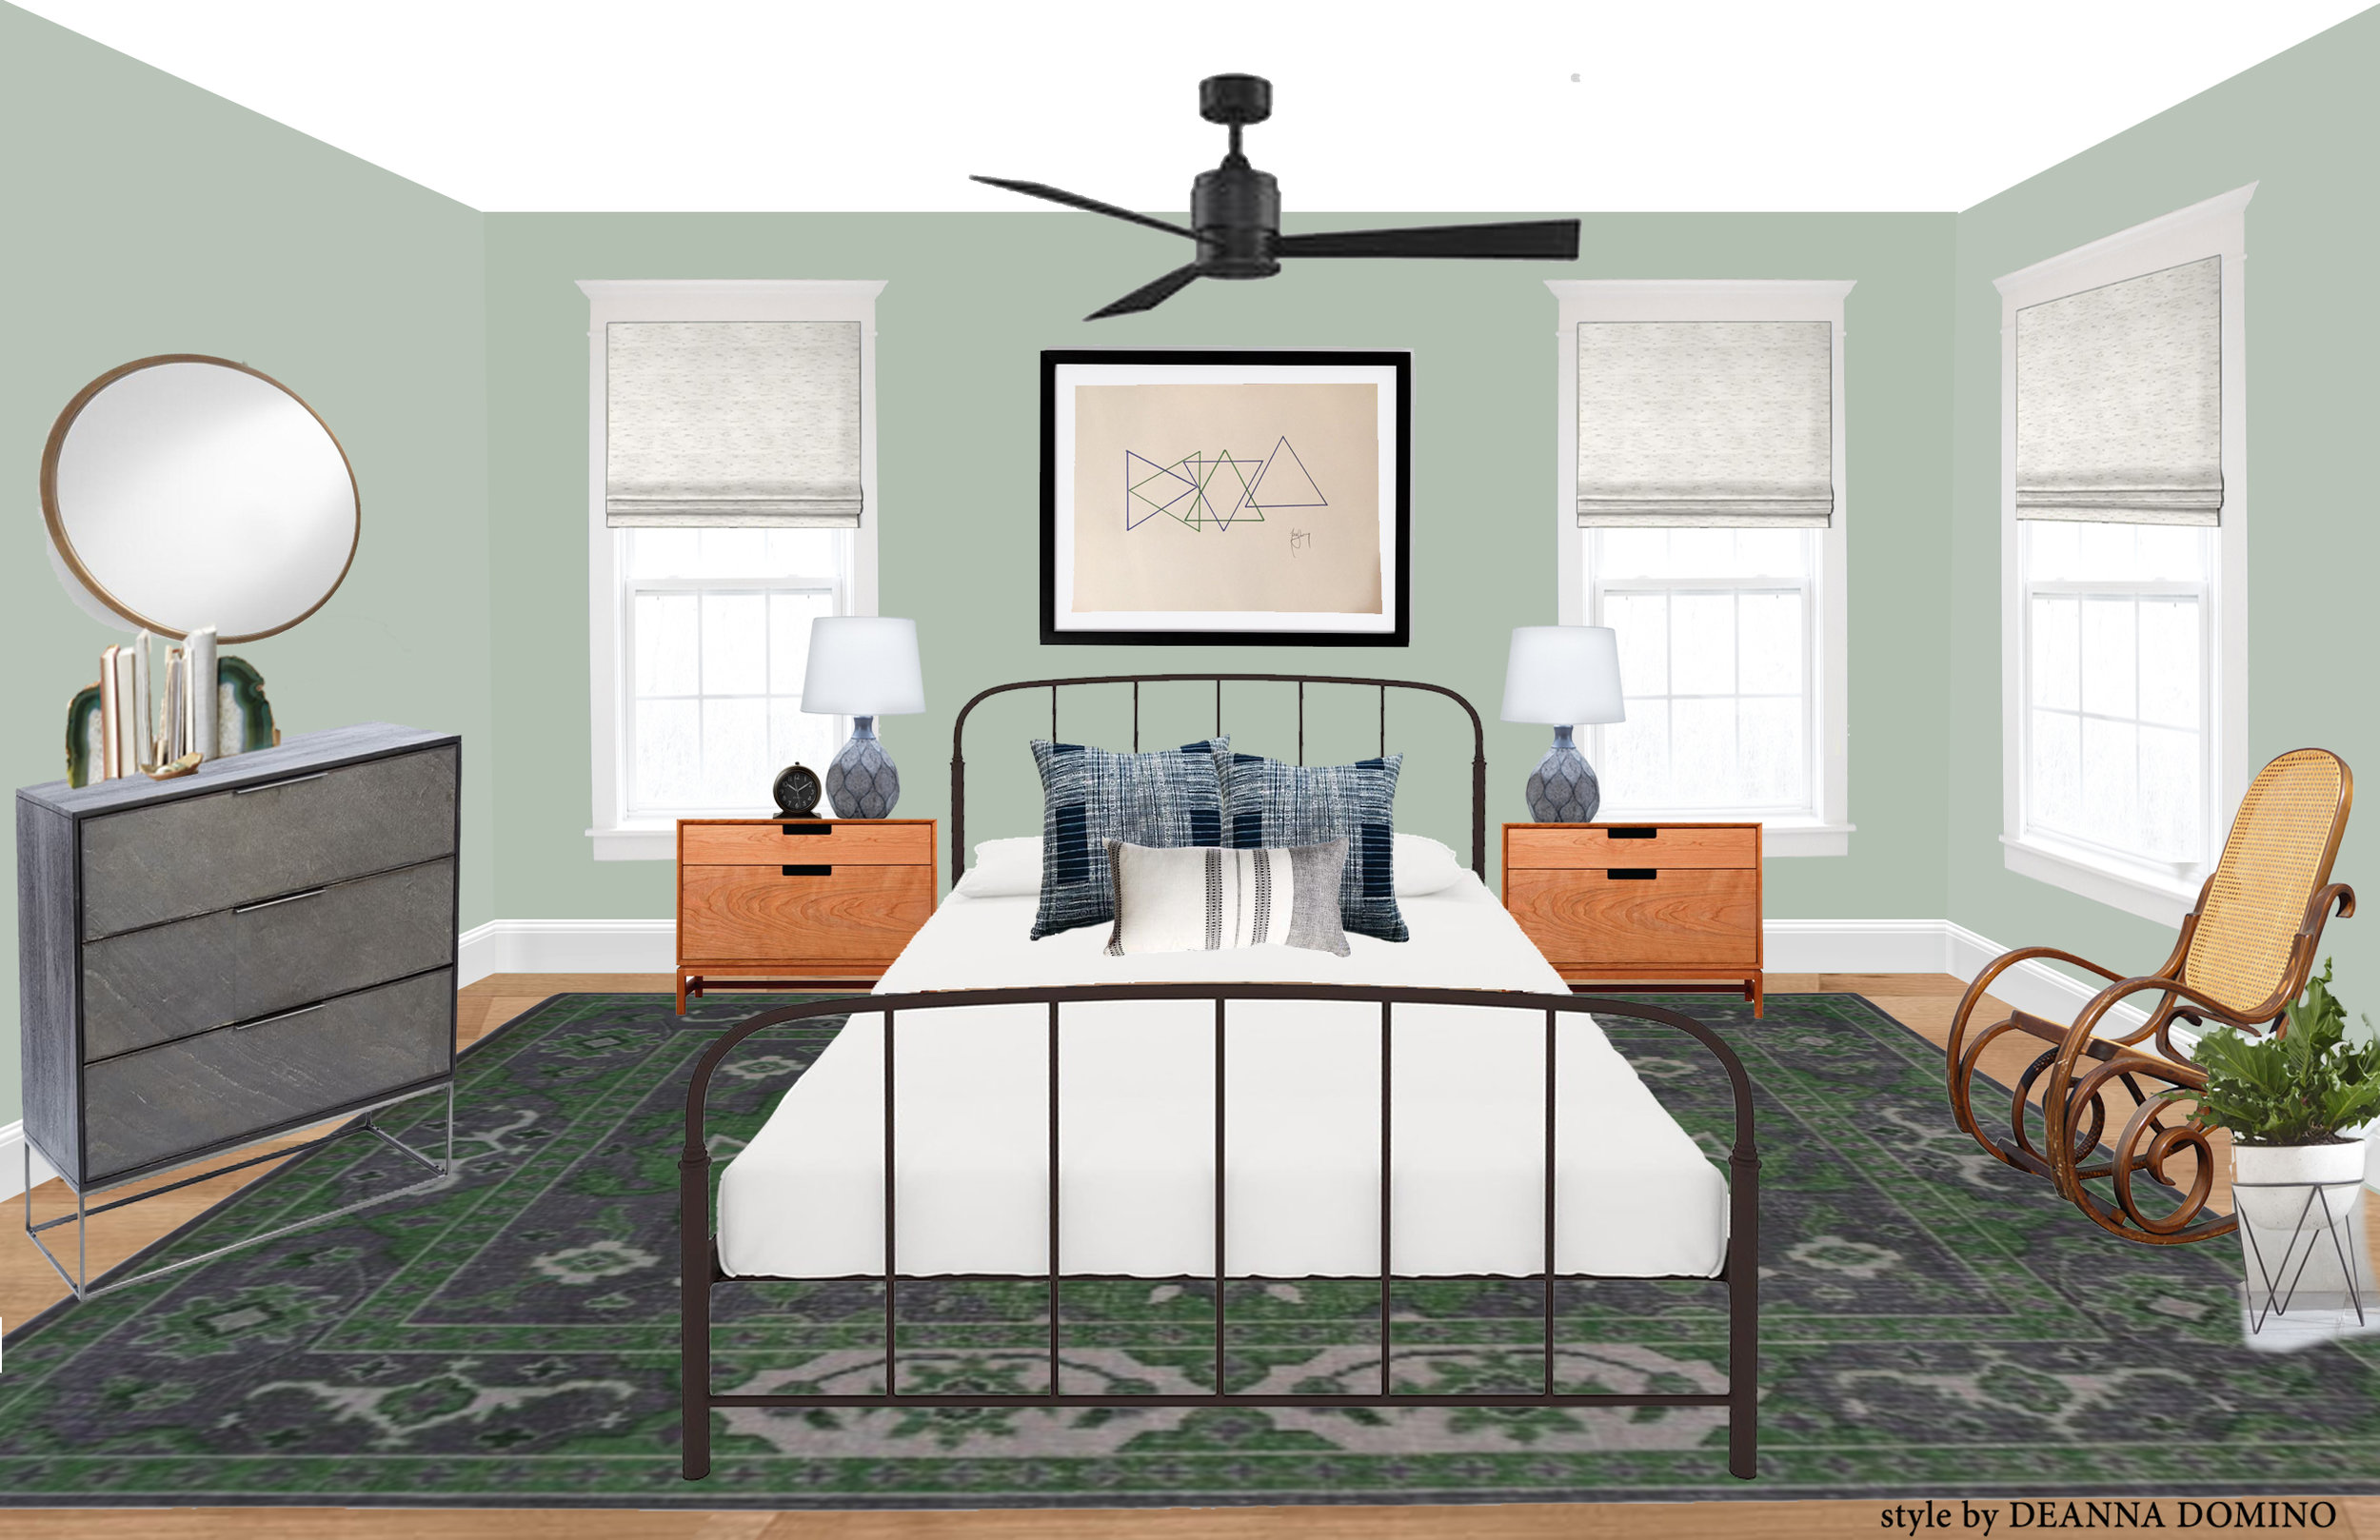 GUEST ROOM eDESIGN